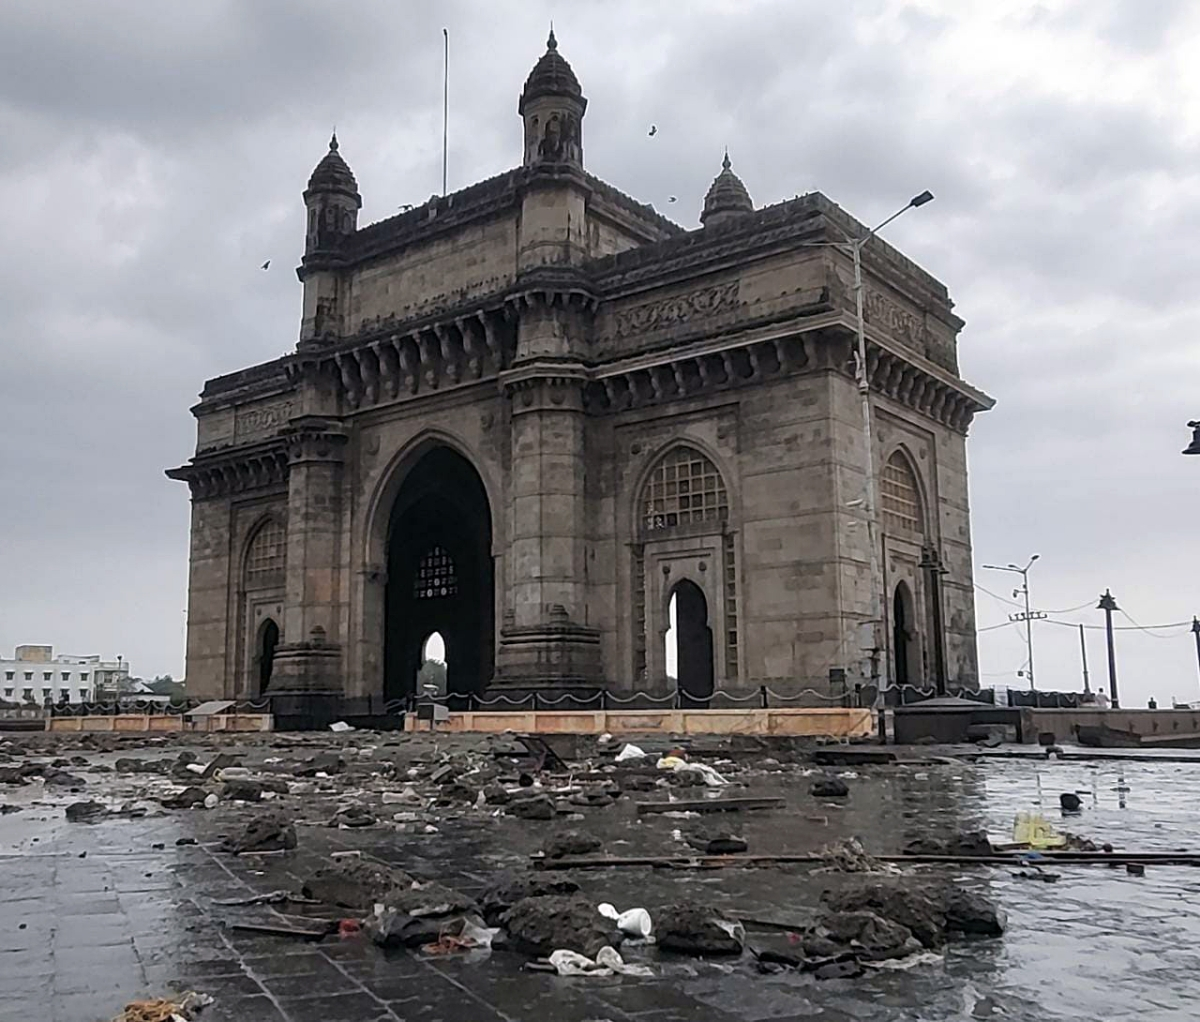 Maharashtra, May 18 (ANI): A view of Gateway of India after Cyclone Tauktae hit, in Mumbai on Tuesday.